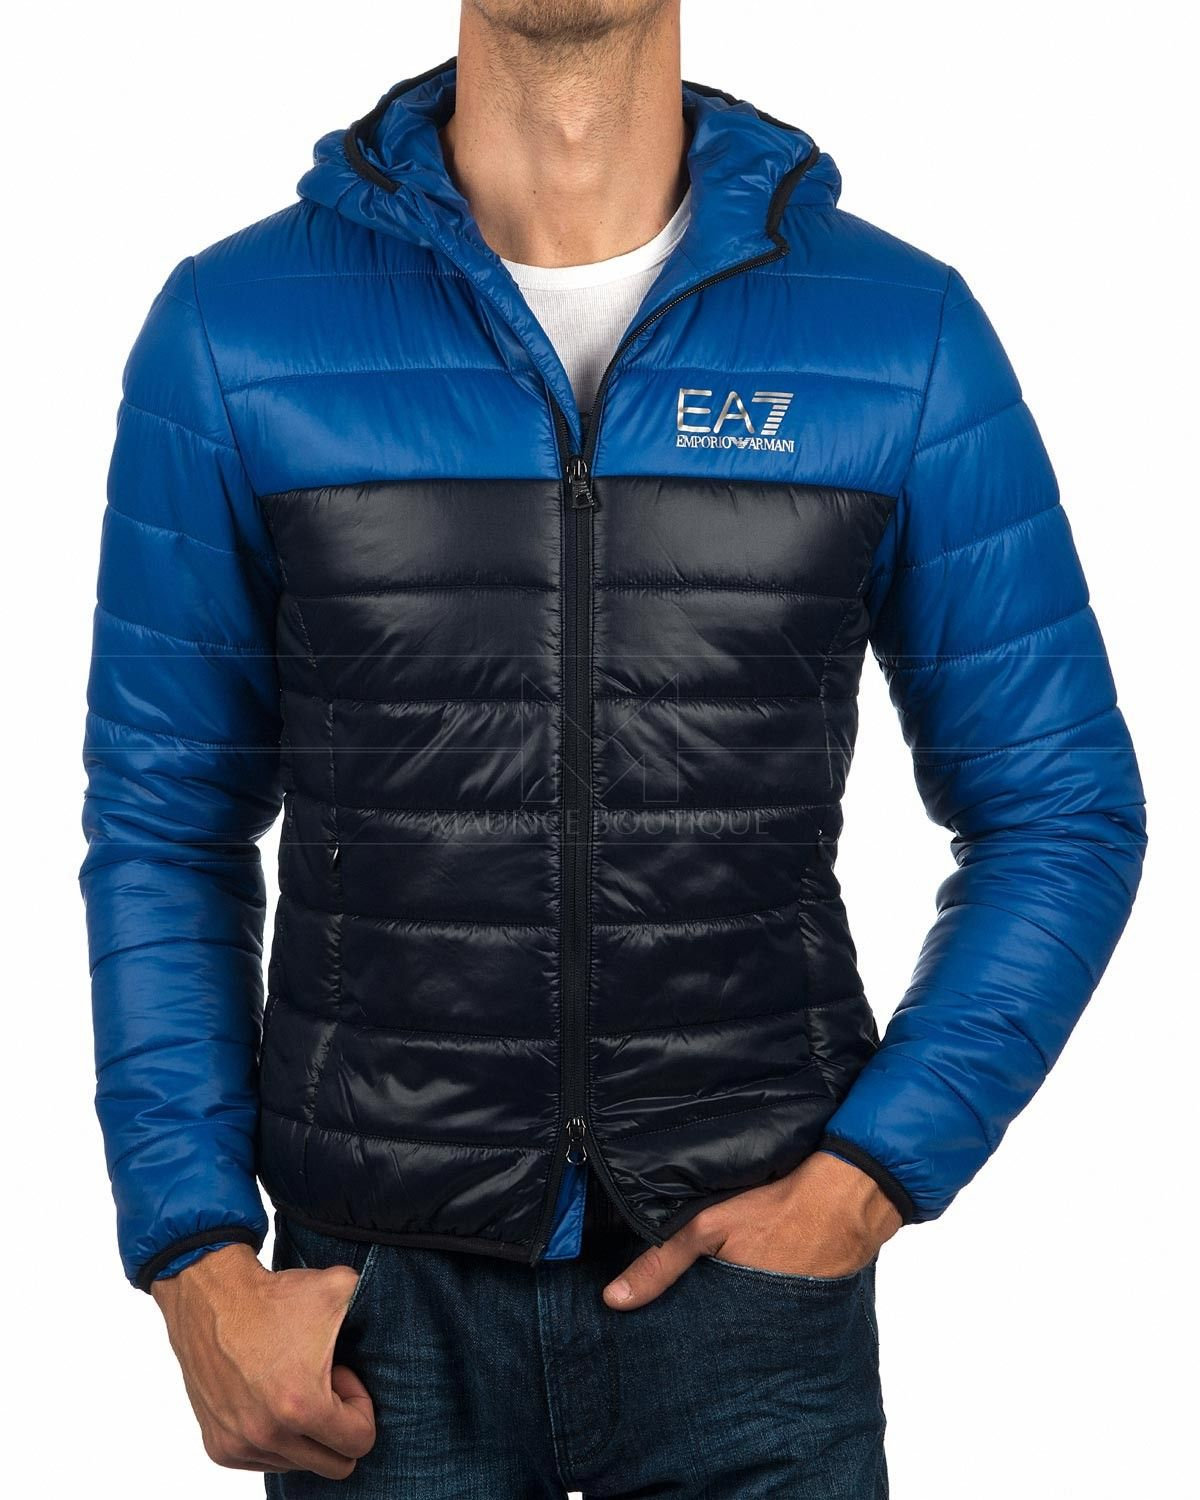 EA7 EMPORIO ARMANI © Jacket with Hoodie - Royal Blue   Navy 0688b138a0d